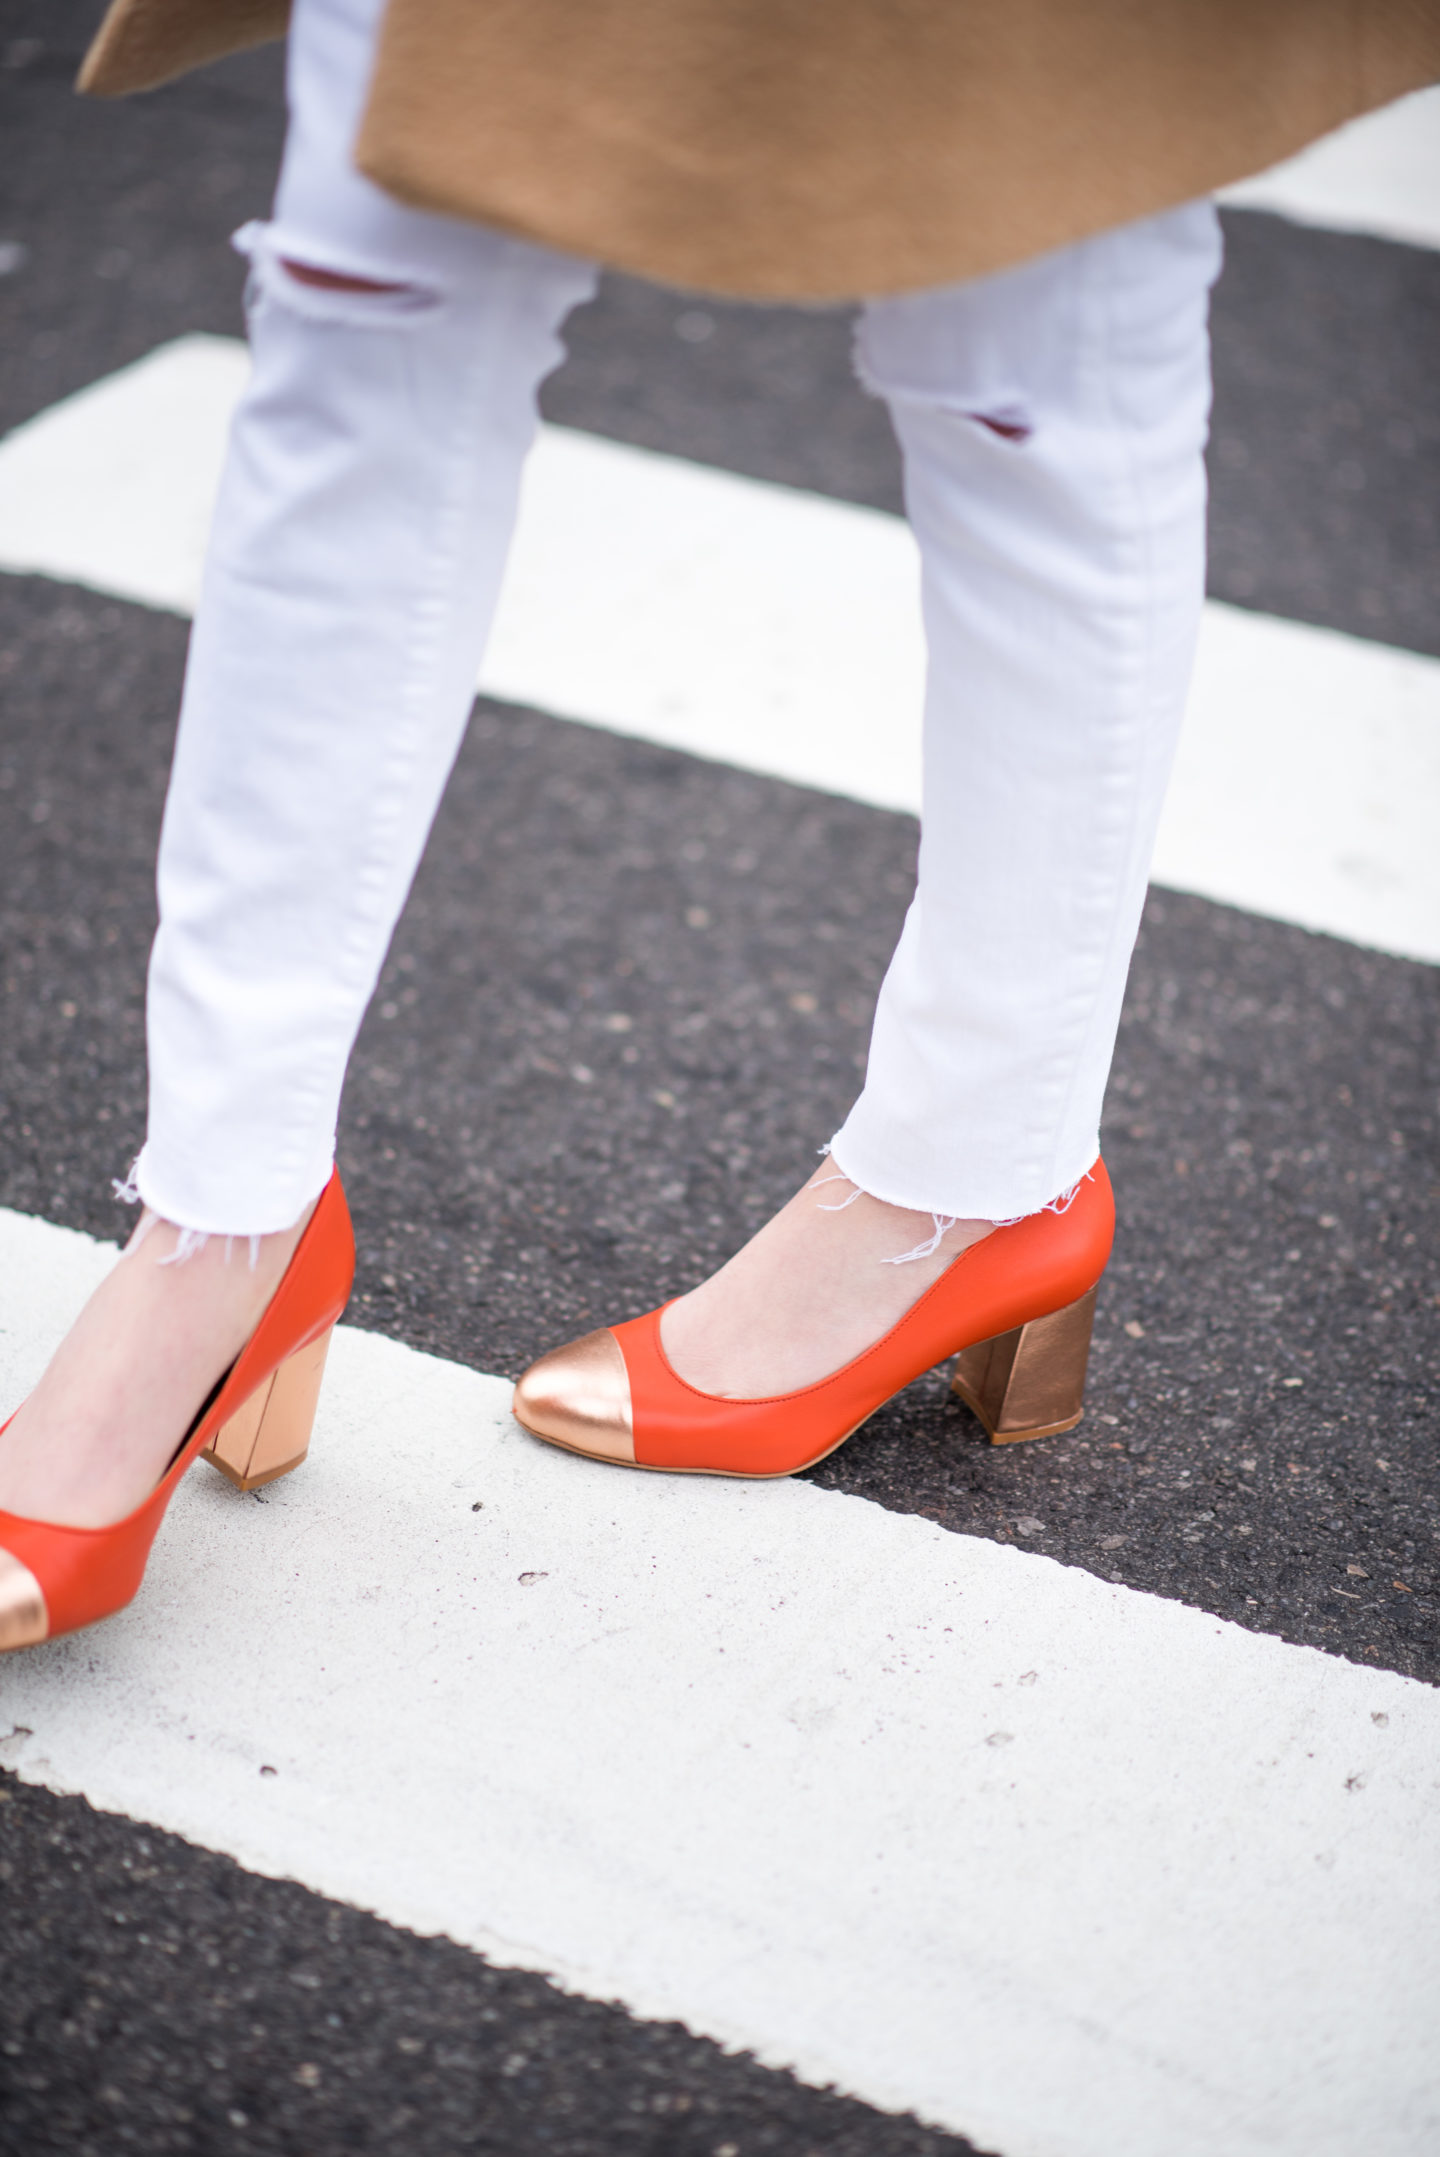 Petite Confessions: Day 3 Look of New York Fashion Week ft. Shoes of Prey